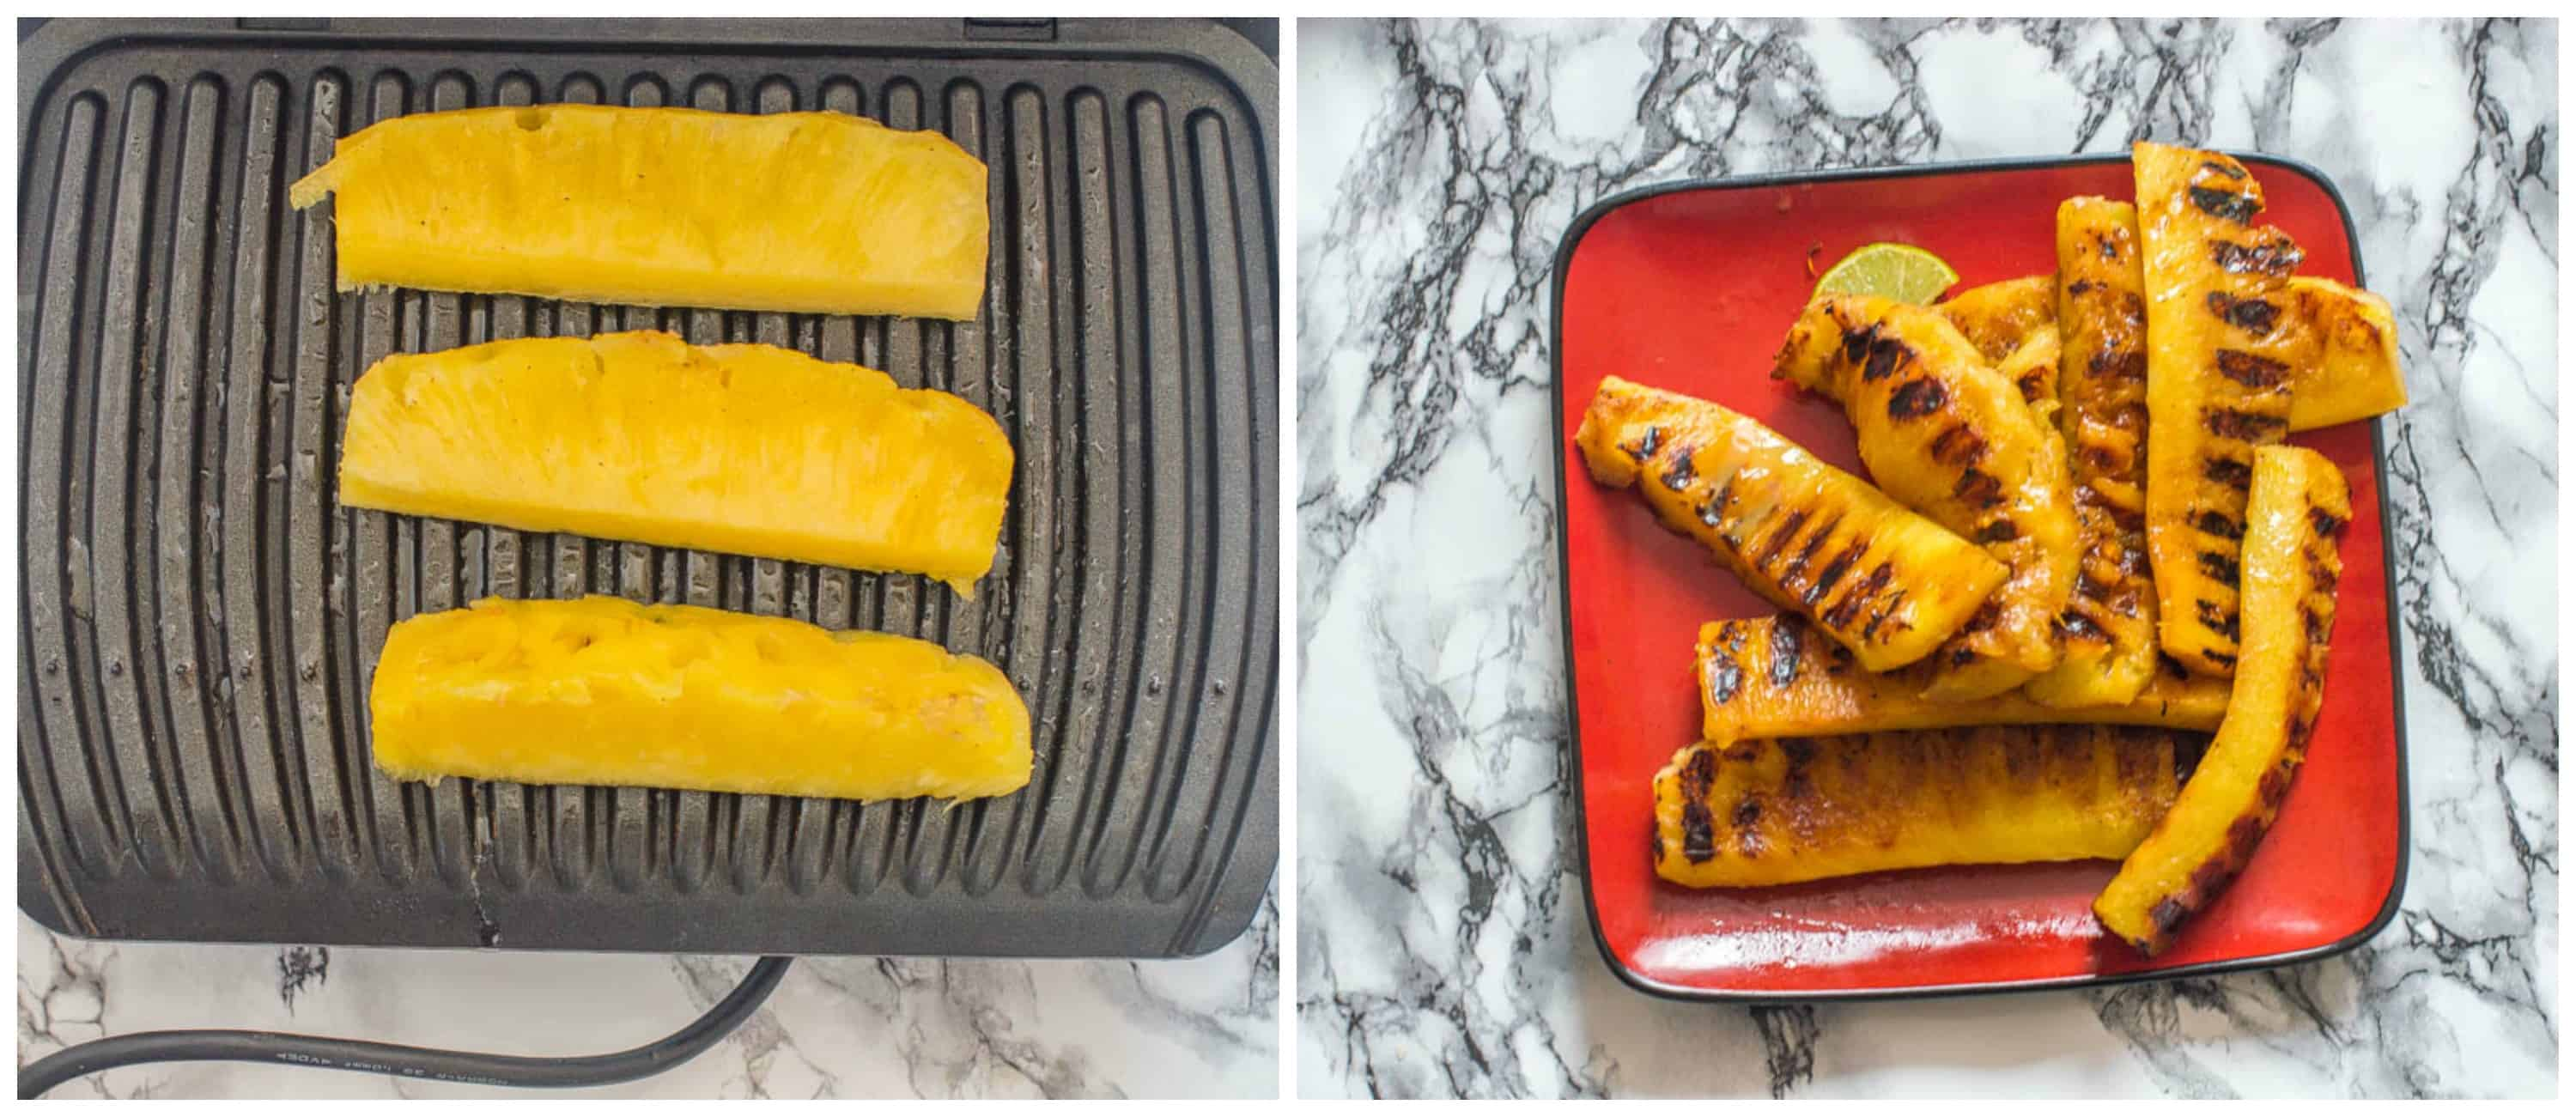 How to grill pineapple steps 3-4